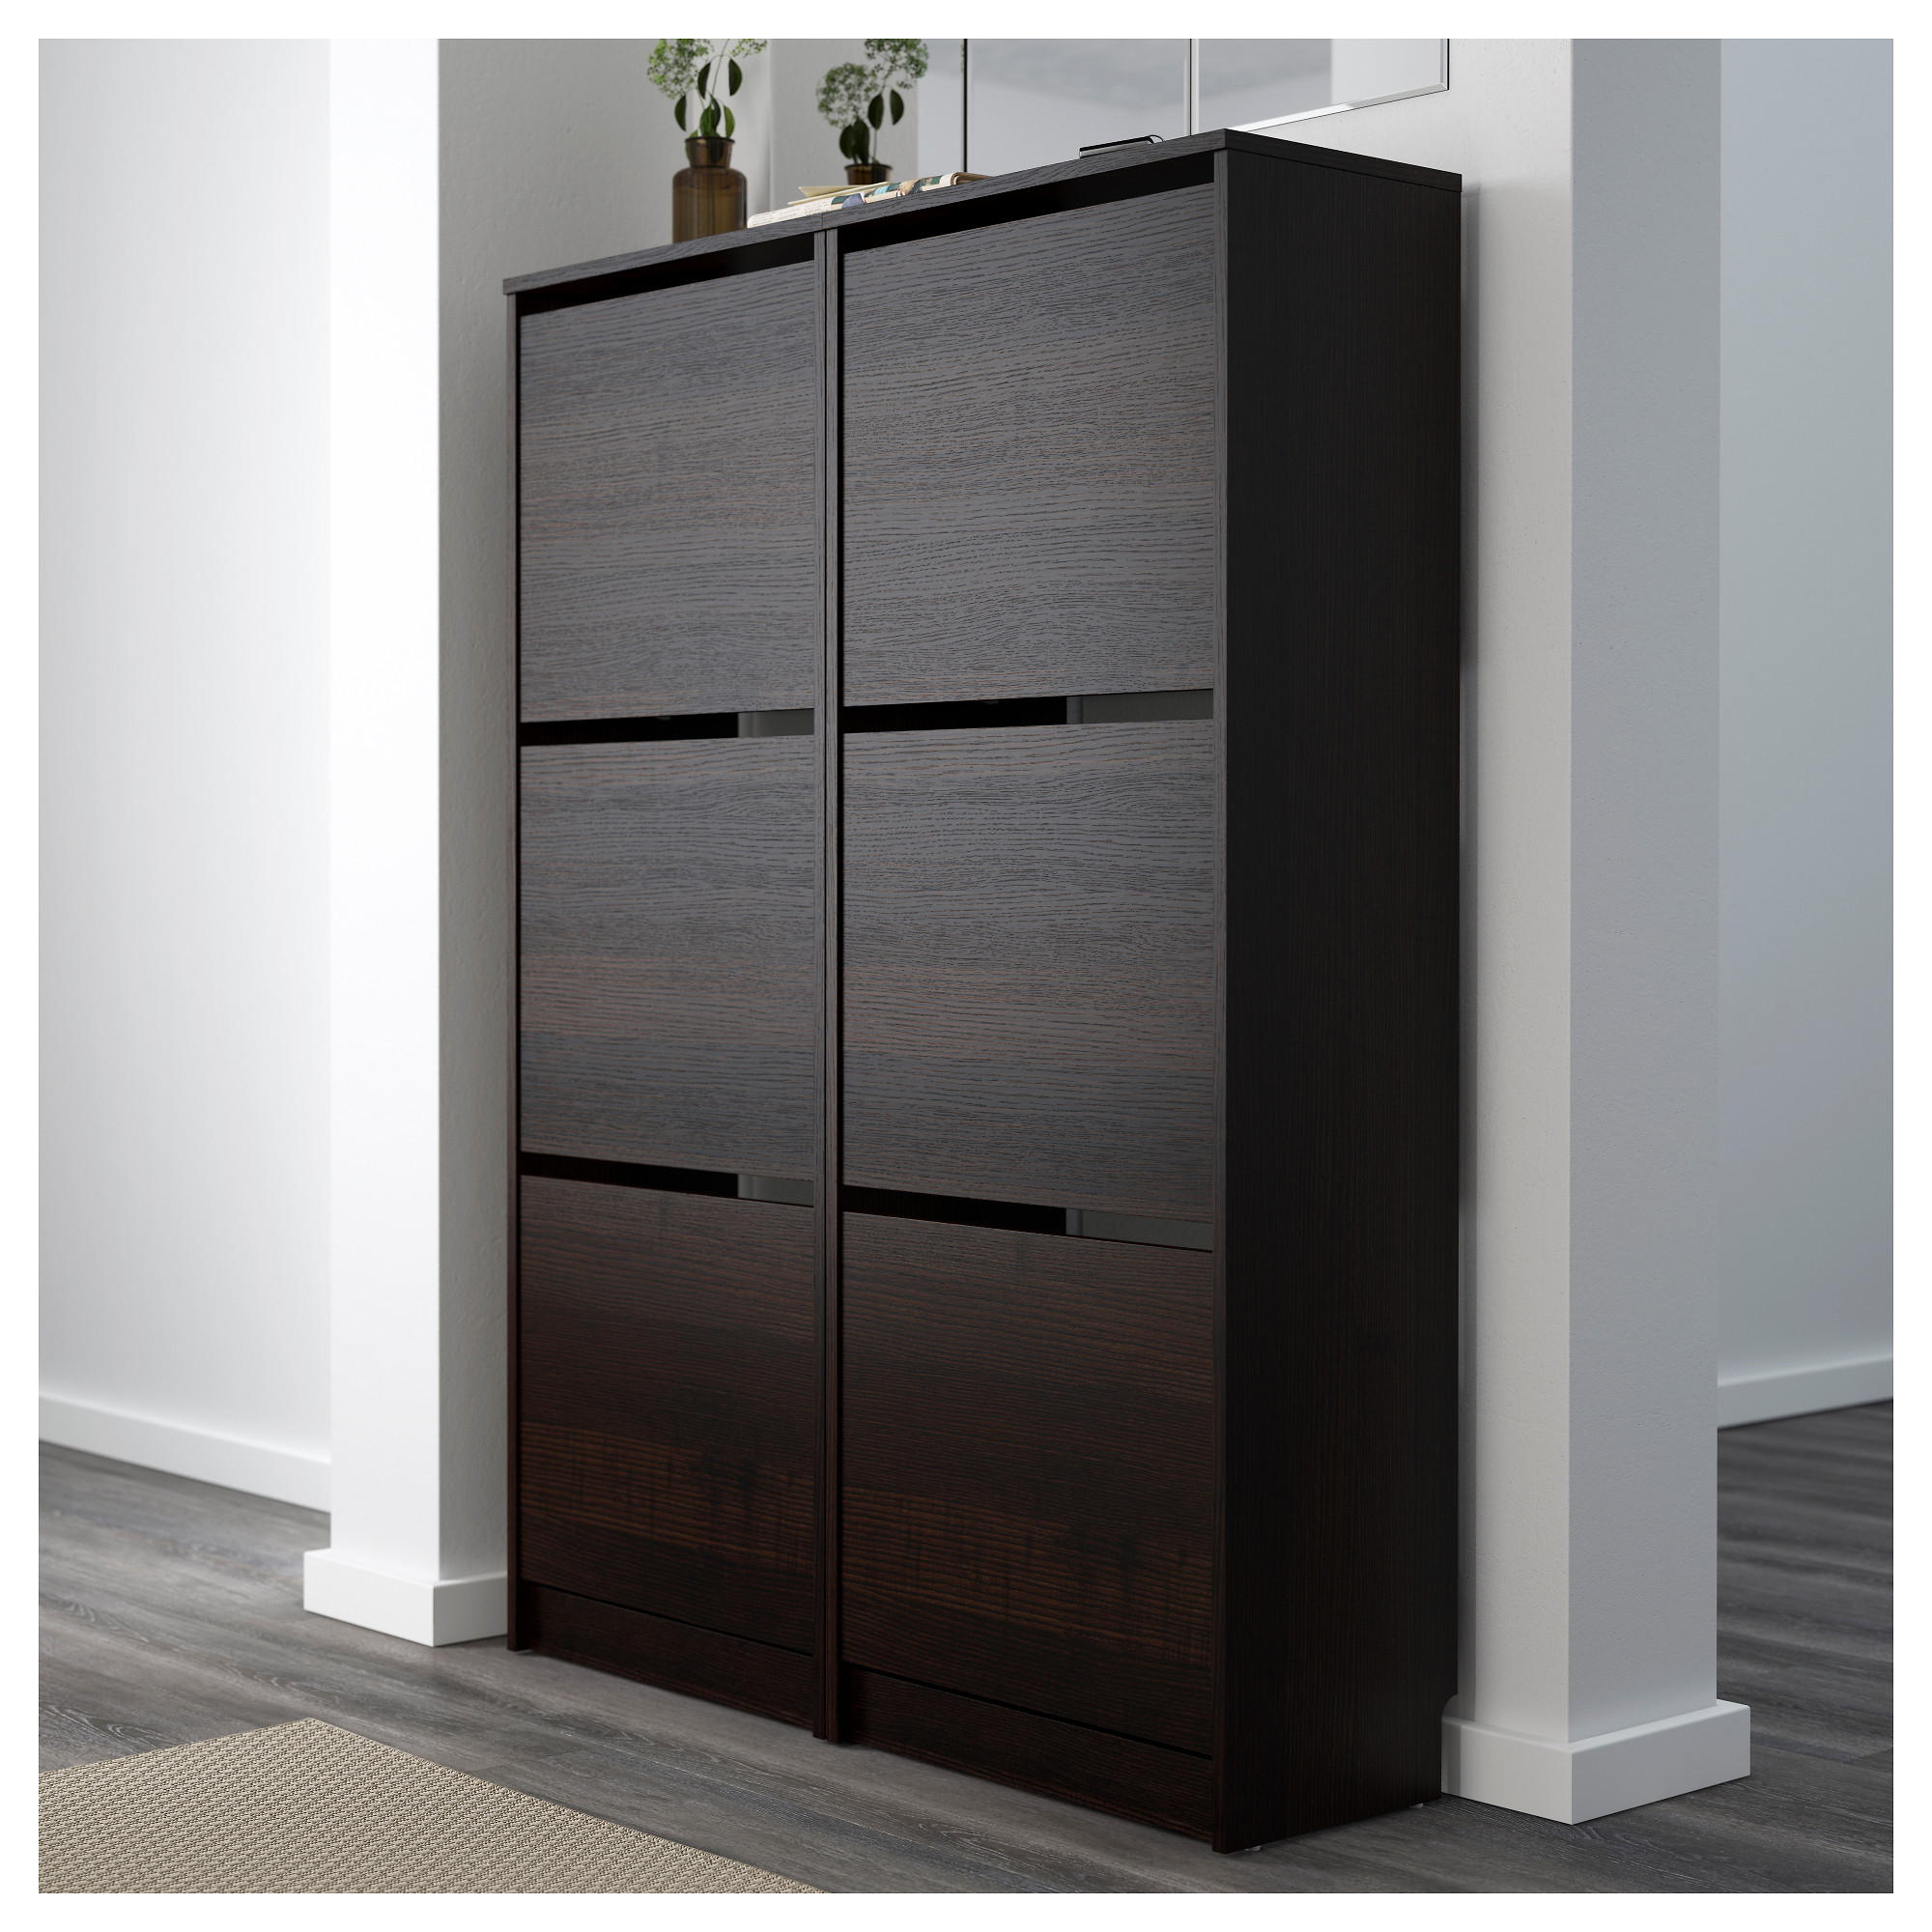 Incroyable IKEA   BISSA Shoe Cabinet With 3 Compartment Black, Brown